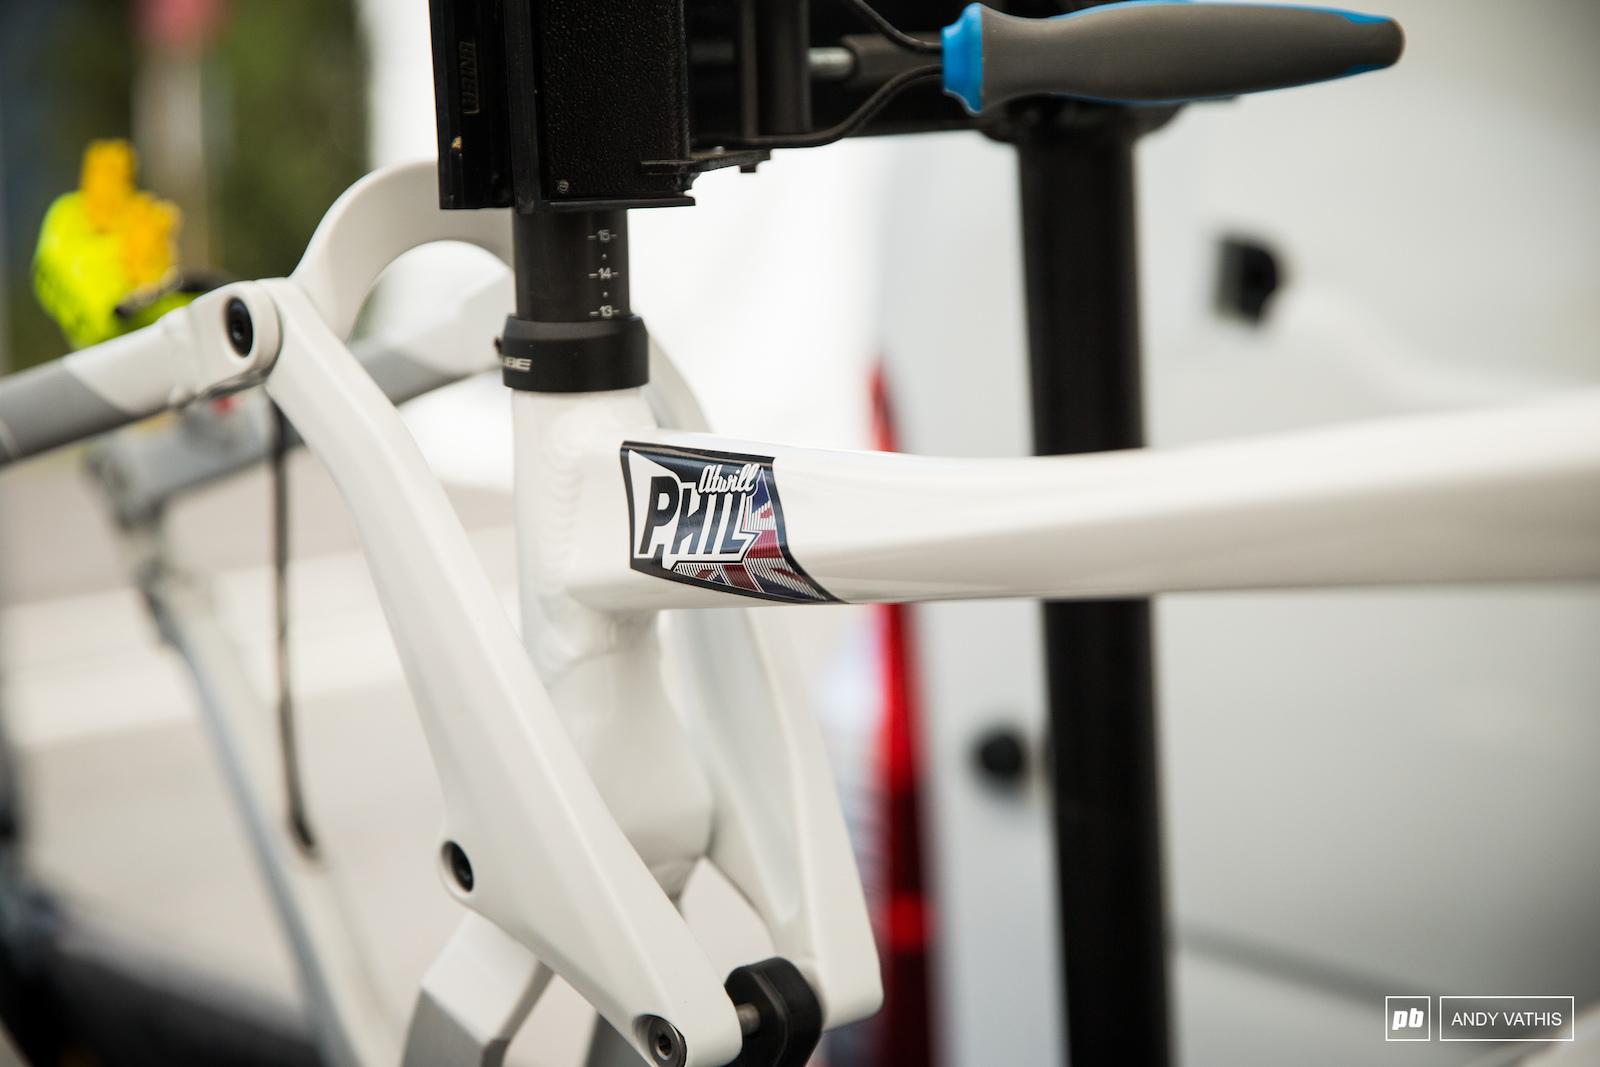 Phil Atwill has got himself a fresh paint job for his Cube Two15.